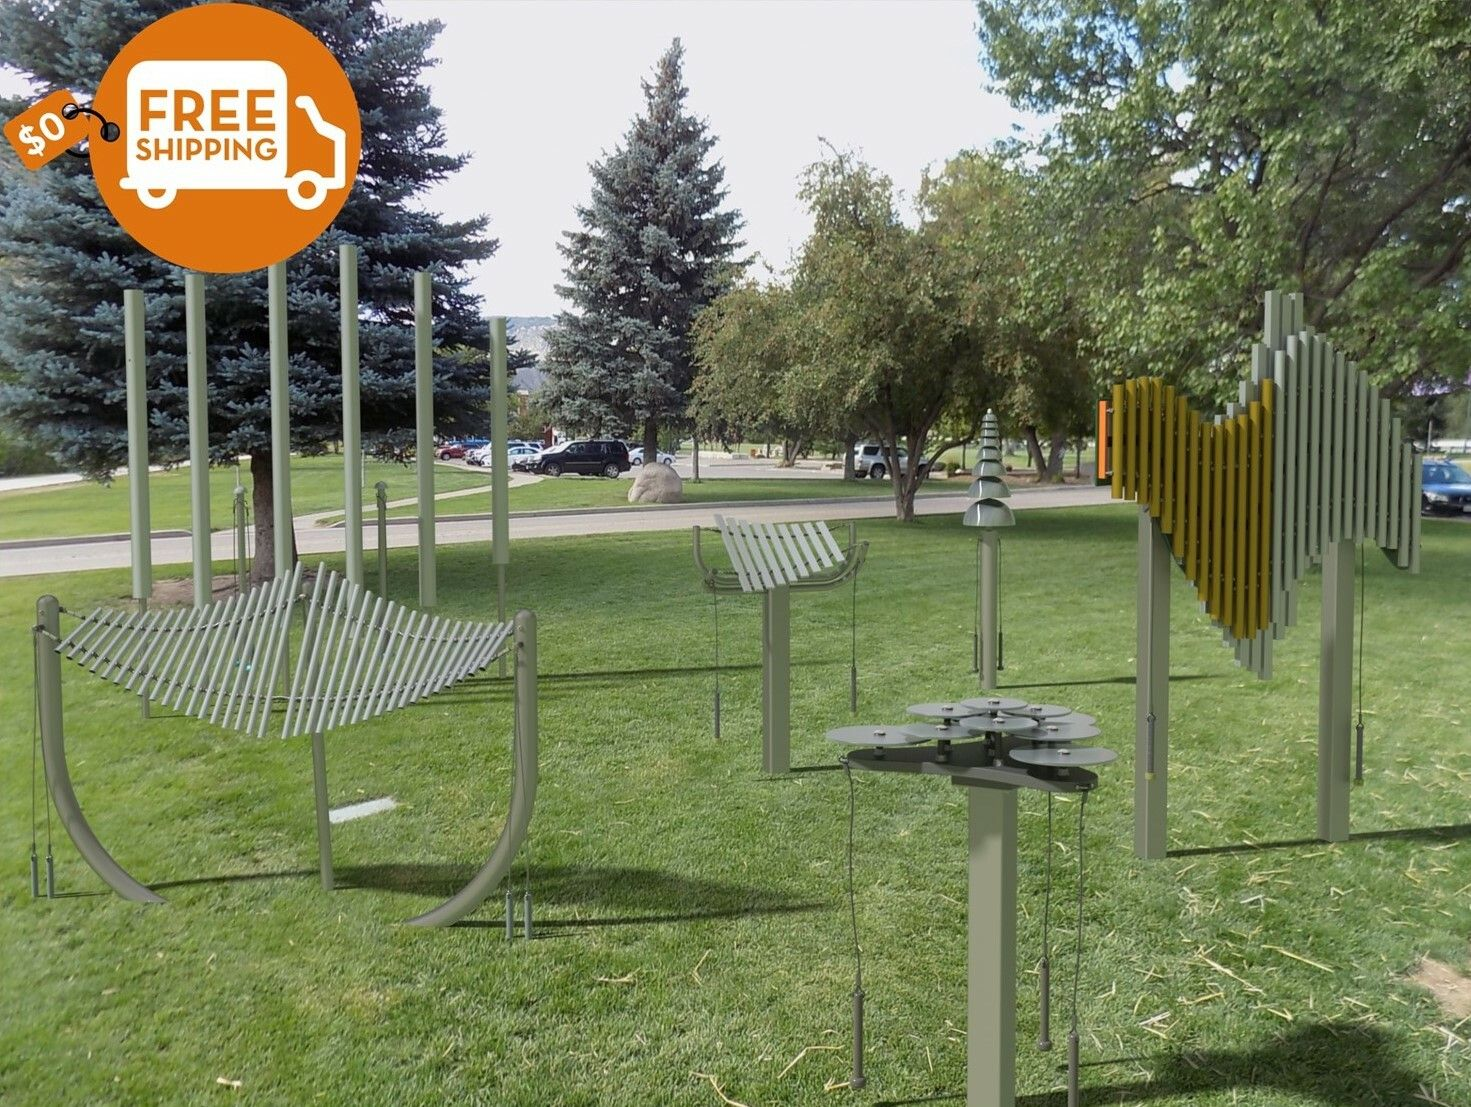 Freenotes Harmony Park Outdoor Musical Instruments For Schools Playgrounds Parks All Ages And Abilities Harmony Park School Playground Playground